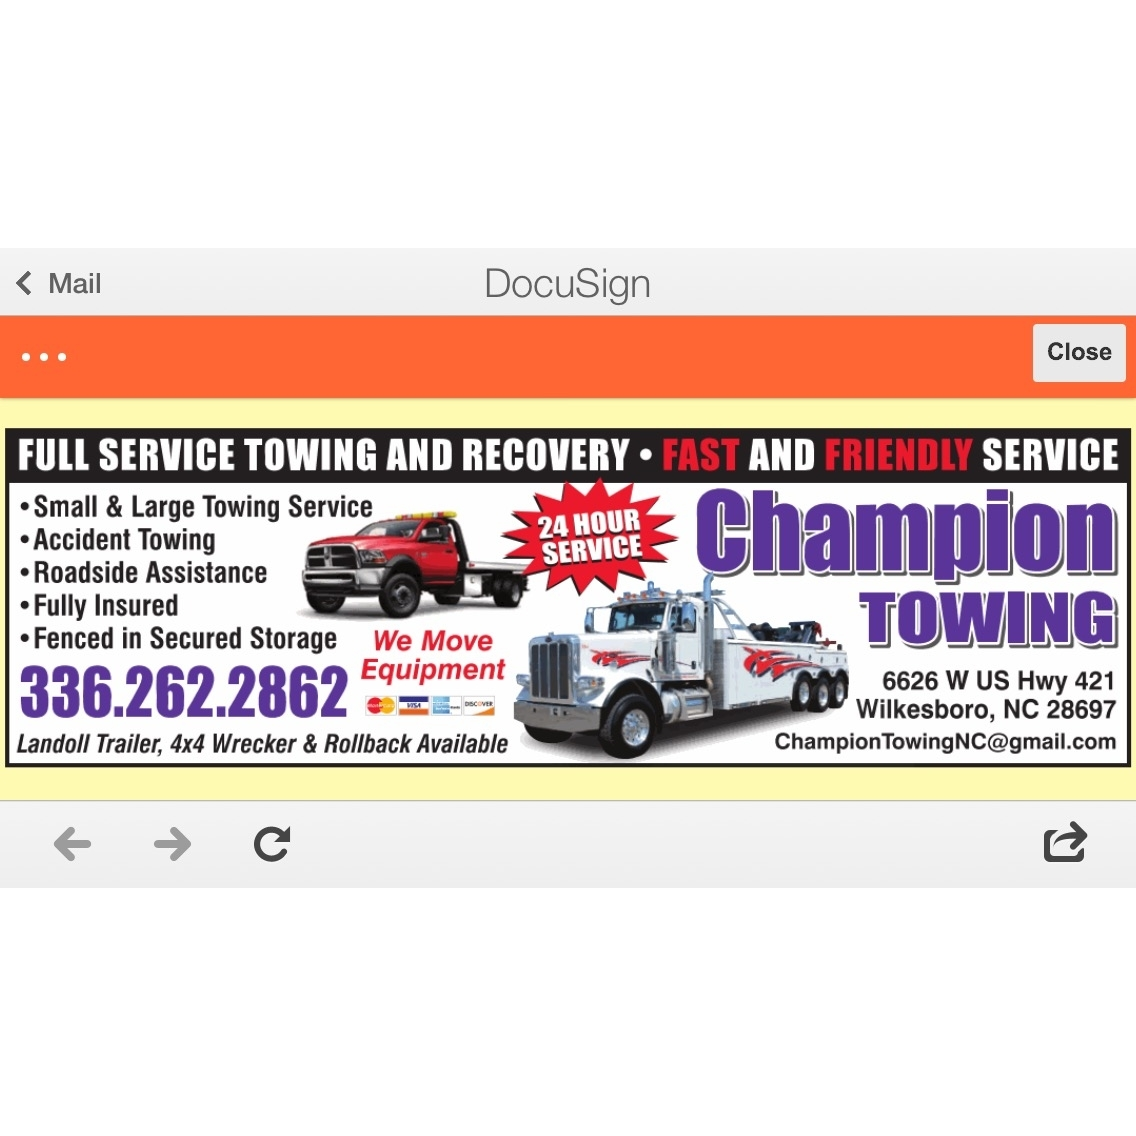 Champion Towing & Recovery